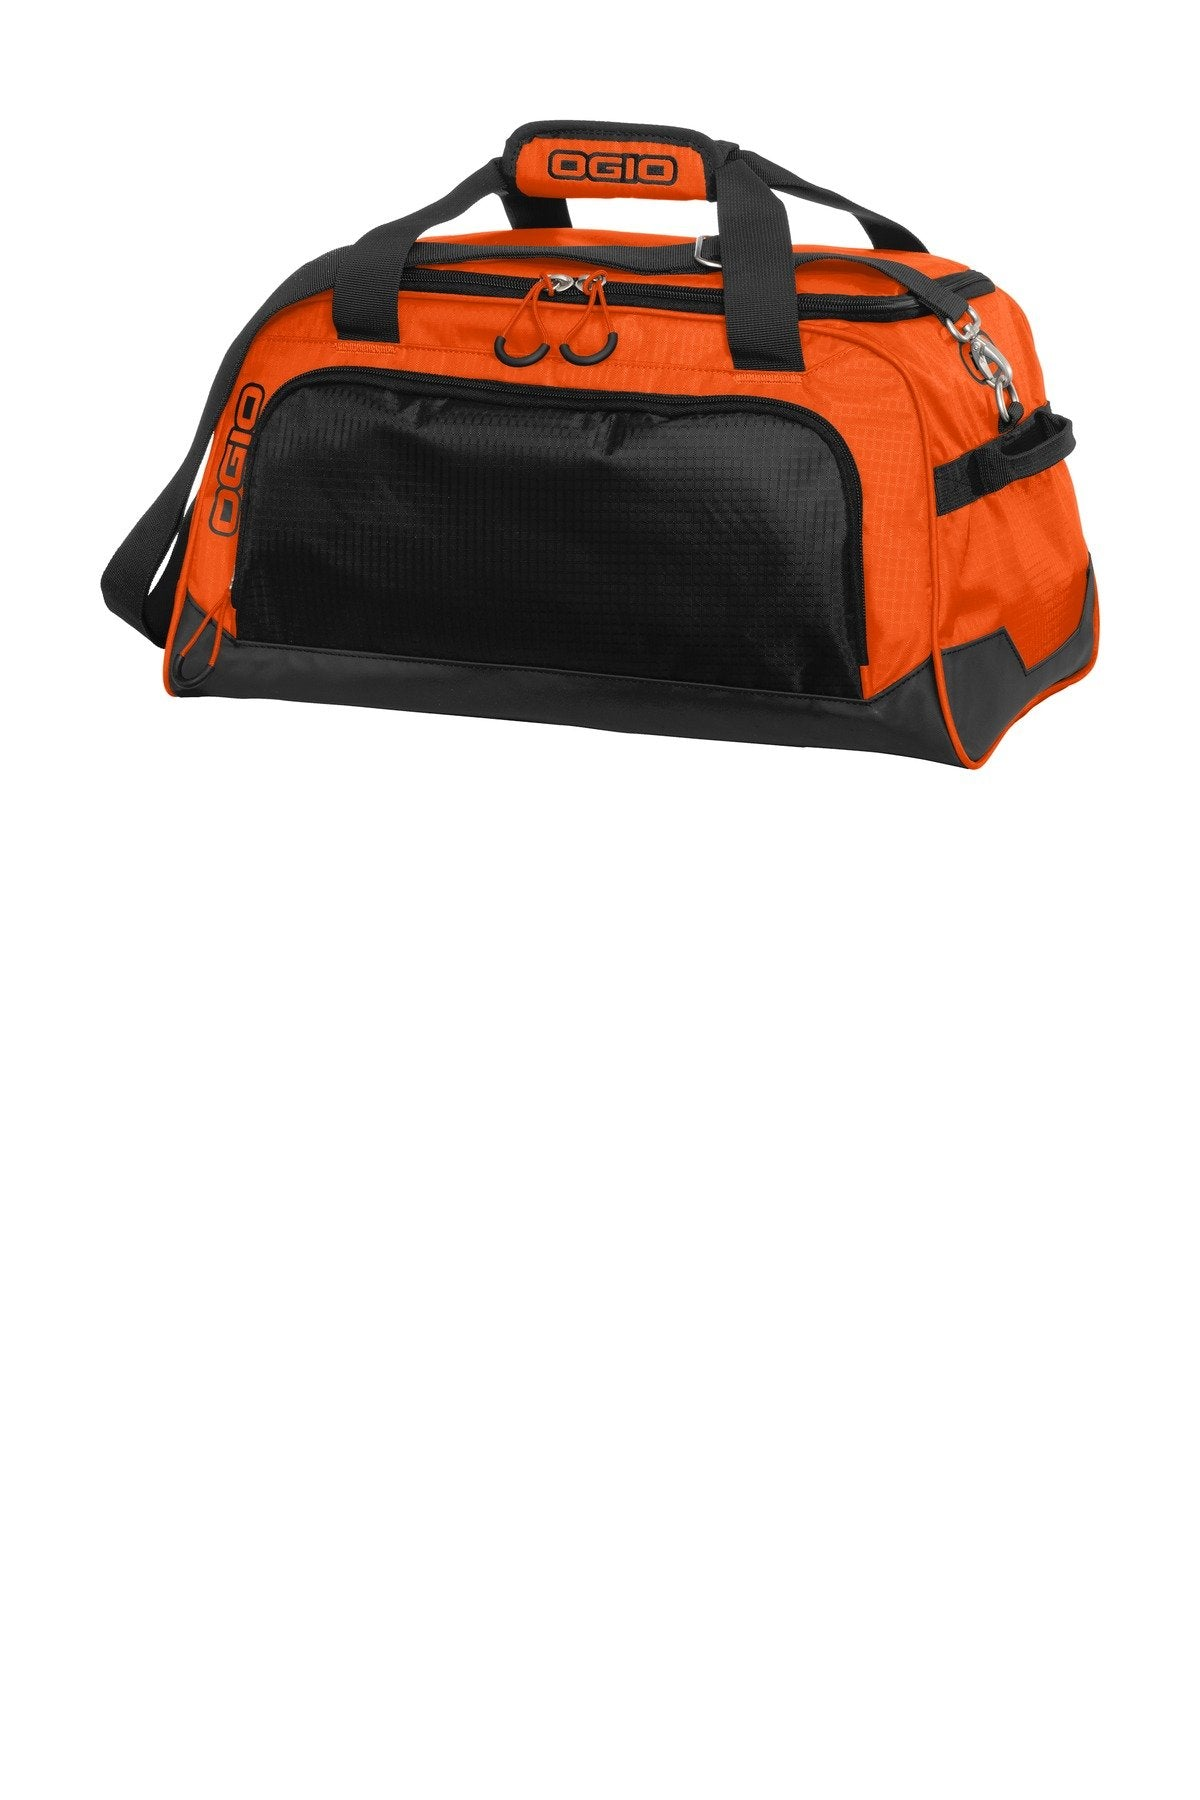 Hot Orange/ Black - OGIO 411095